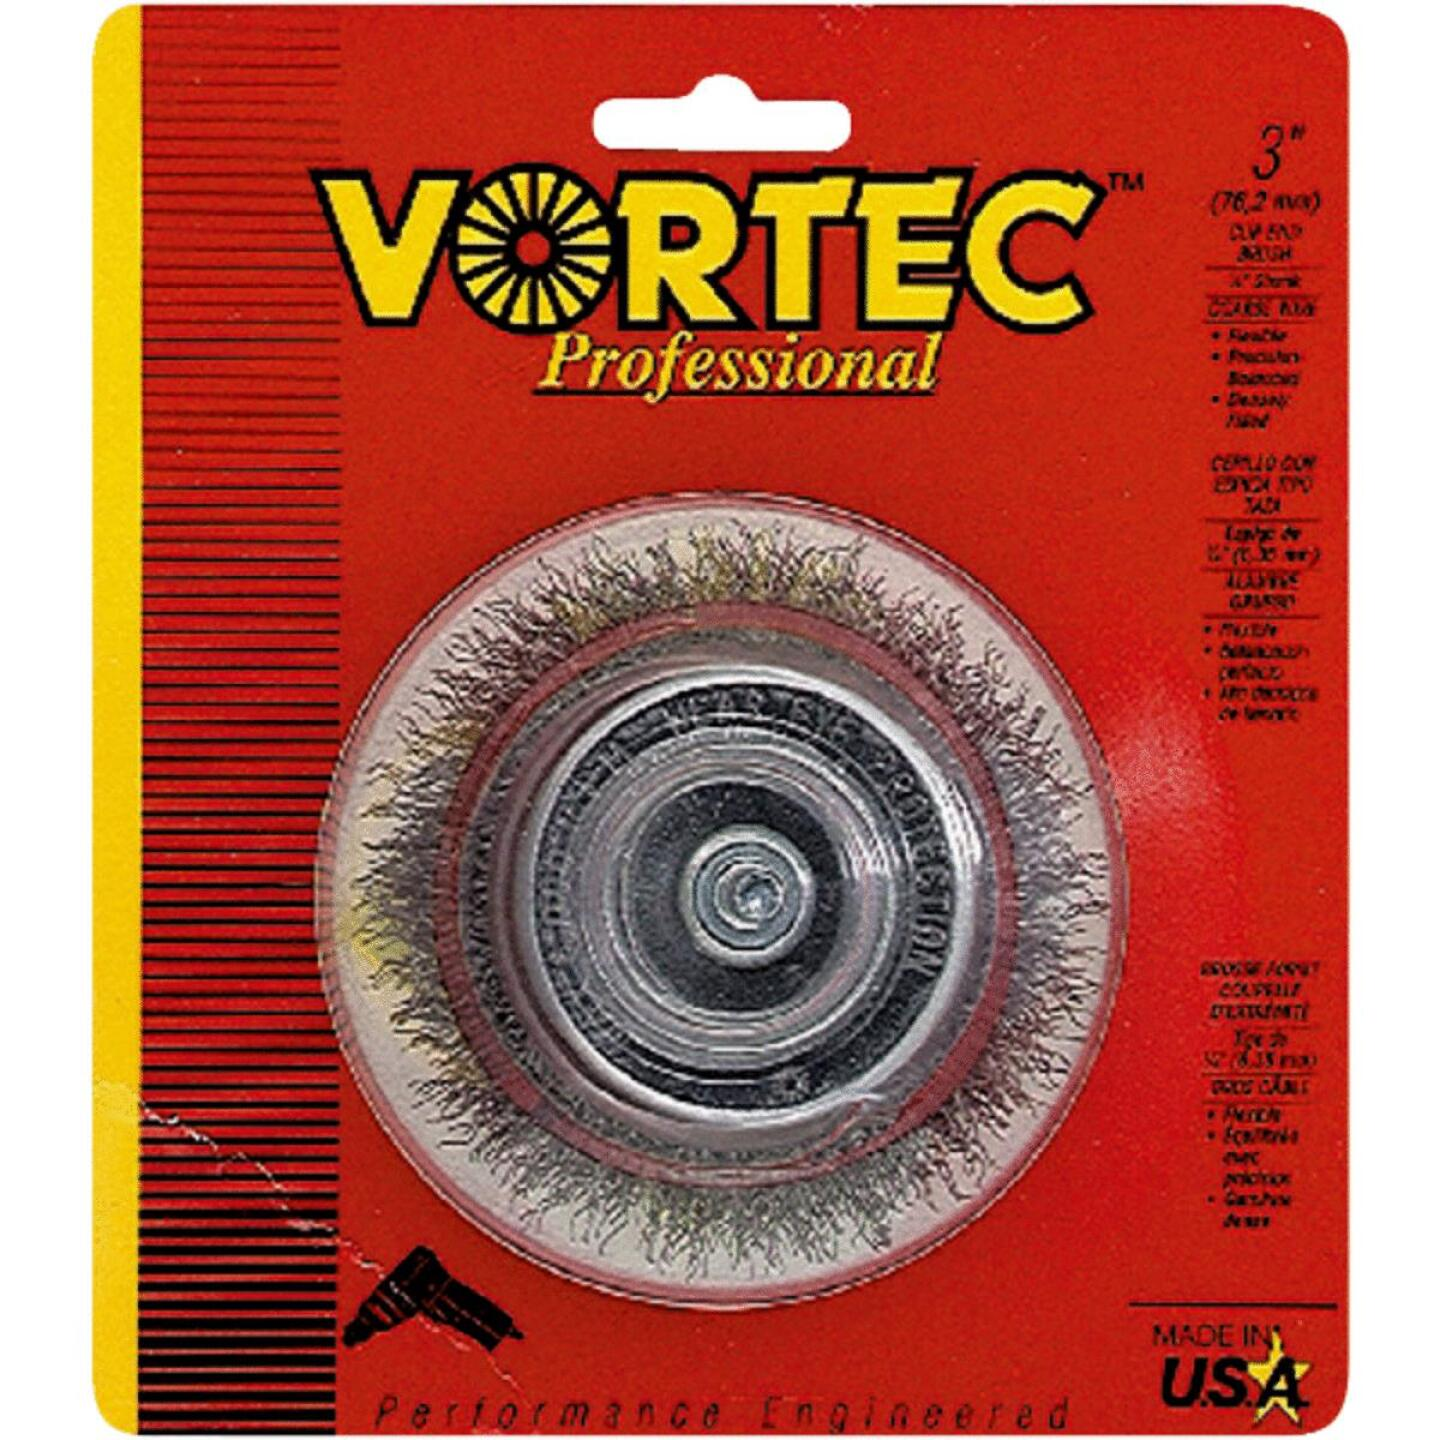 Weiler Vortec 3 In. Professional Shank-Mounted Drill-Mounted Wire Brush Image 1